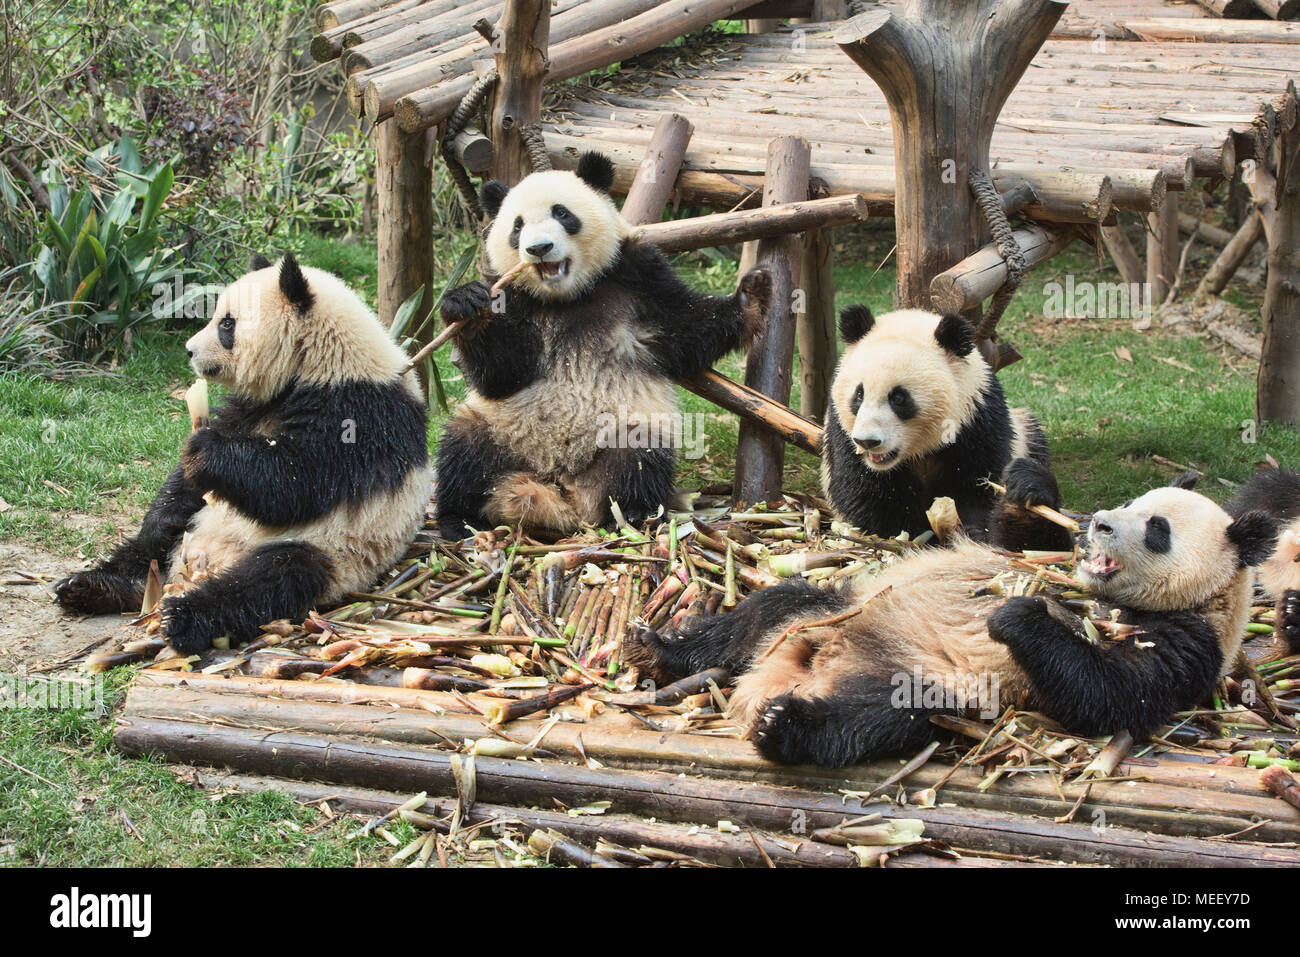 Giant pandas eating bamboo at the Chengdu Research Base of Giant Panda Breeding in Chengdu, Sichuan, China - Stock Image